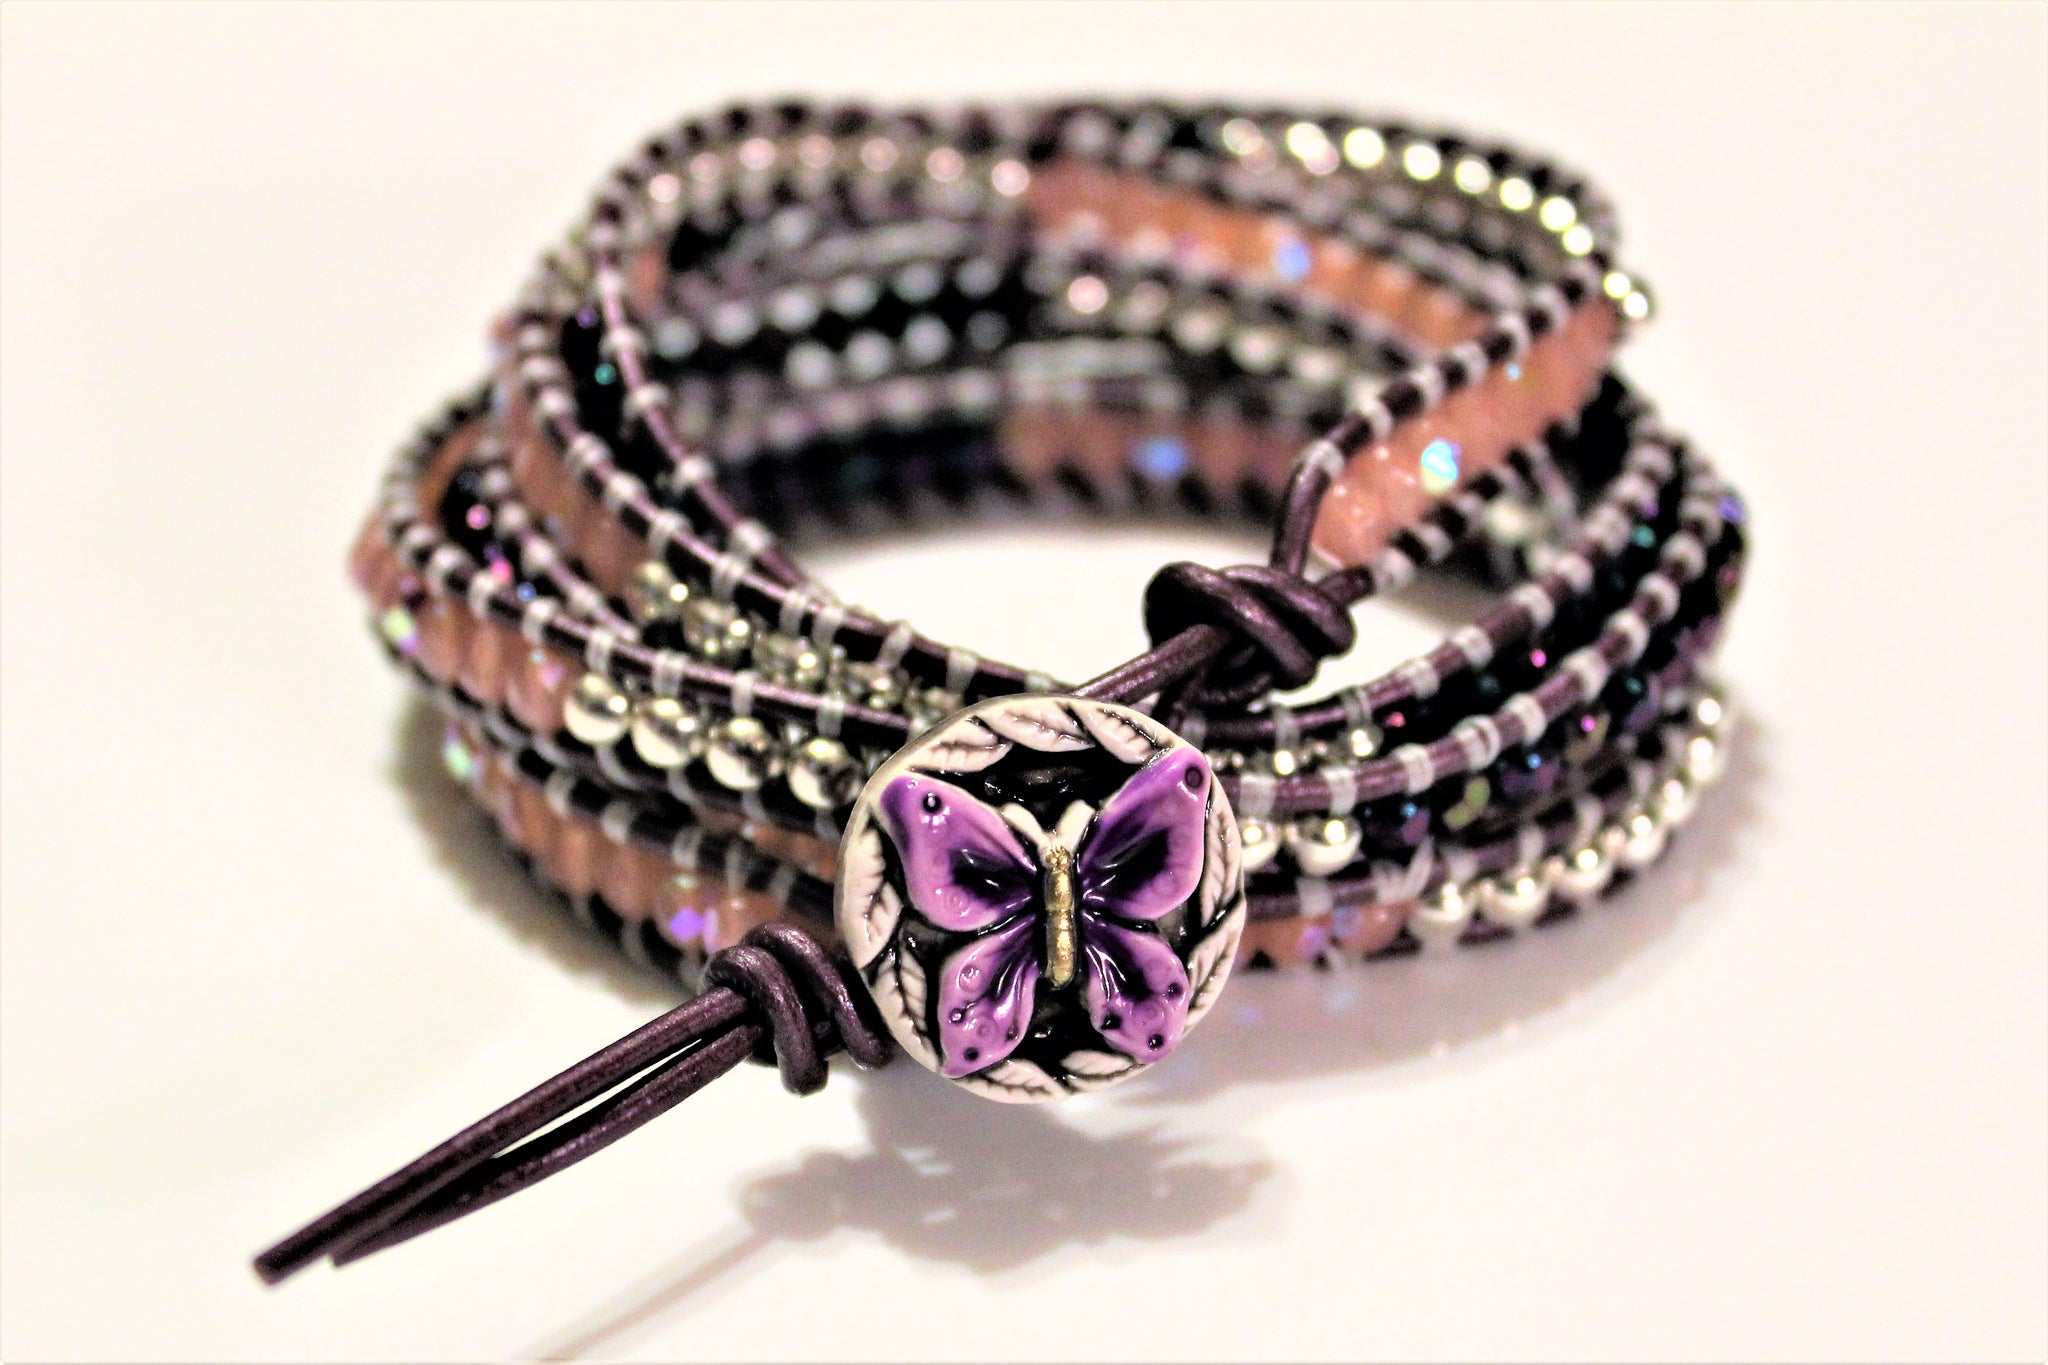 Wrap bracelets made of leather, crystals and beads.